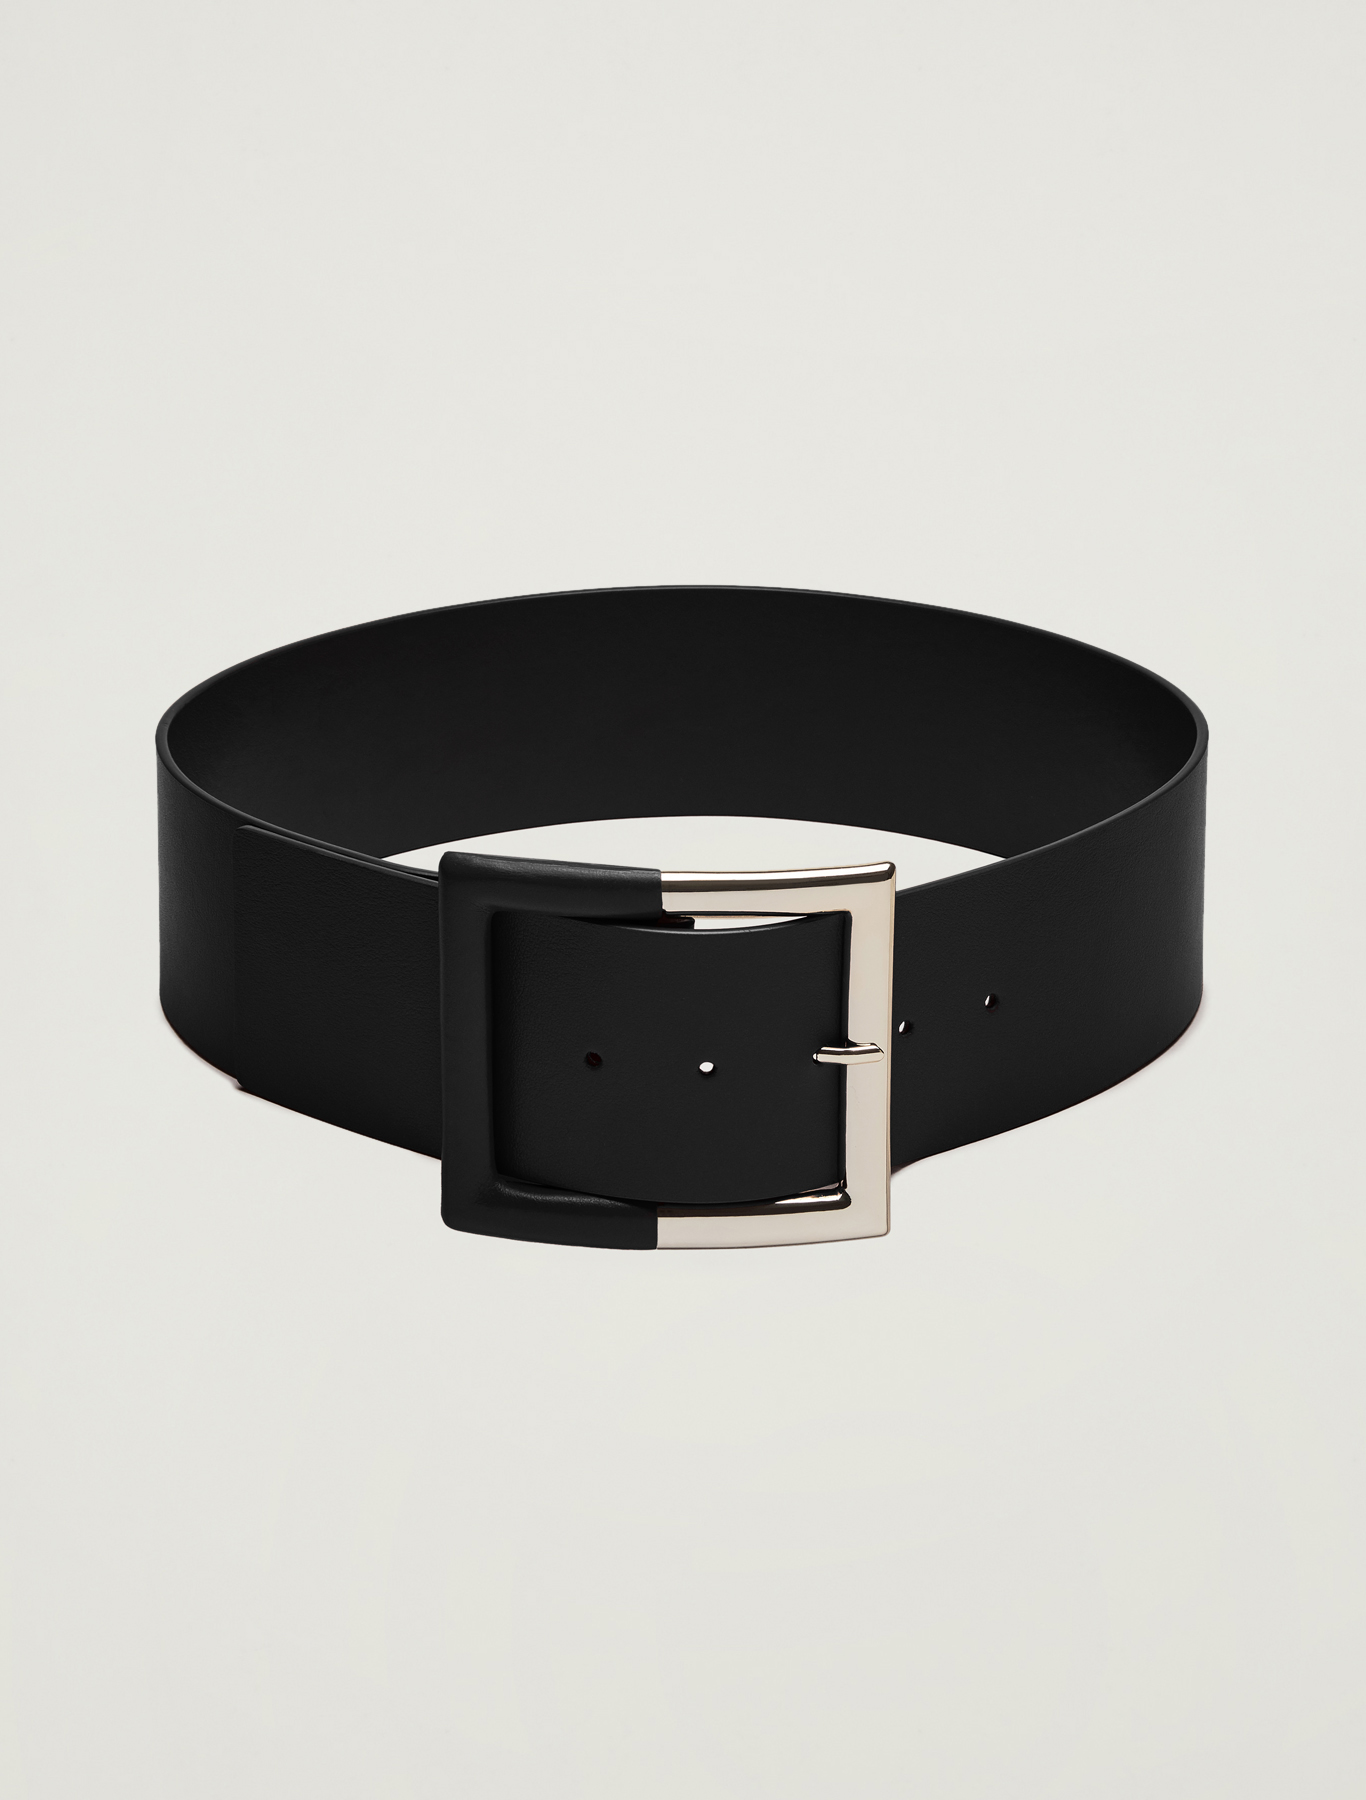 Wide leather belt - black - pennyblack